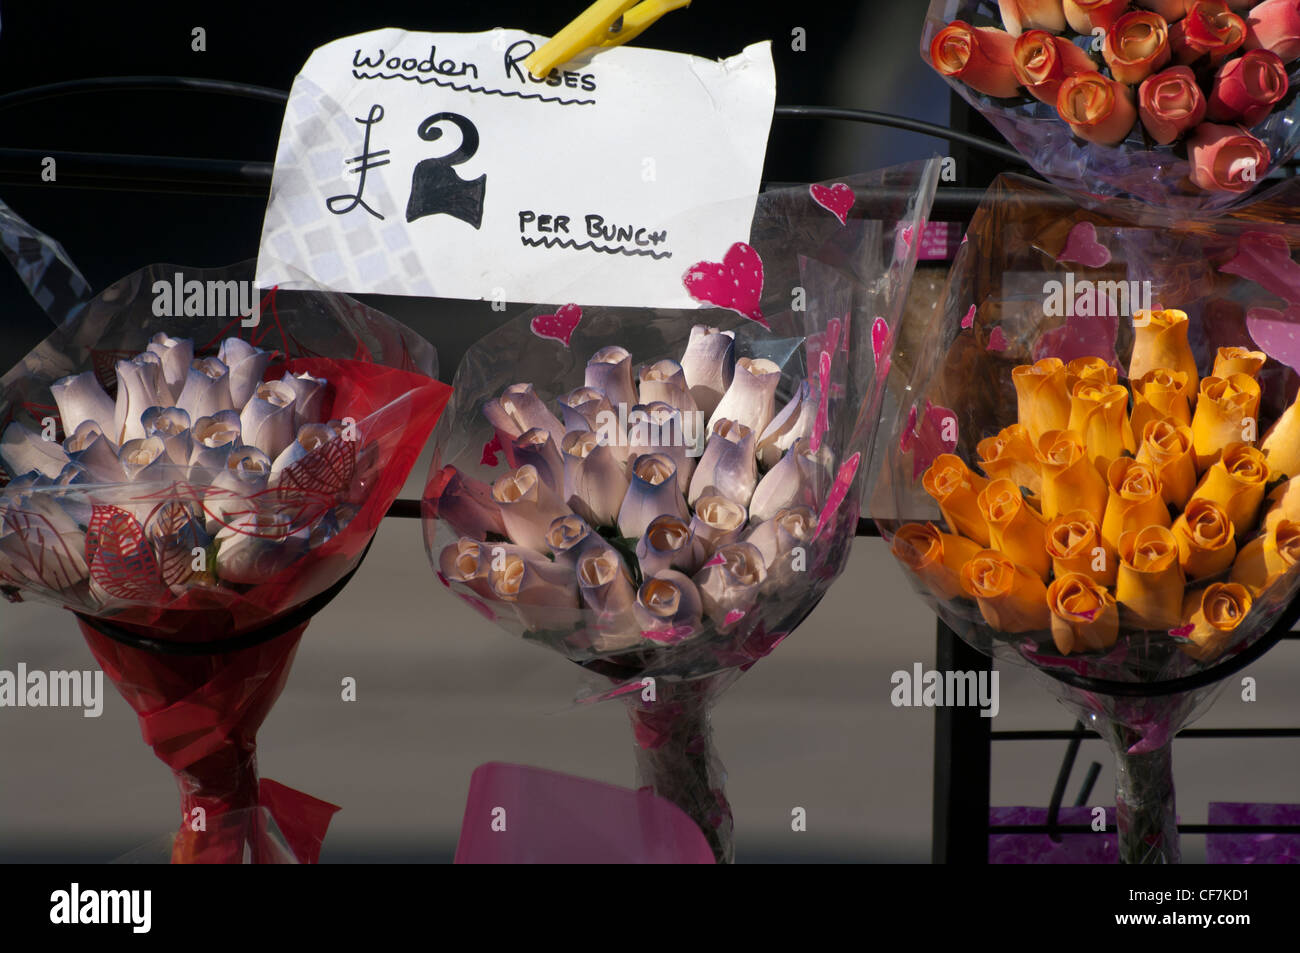 Florists Display Of Bunches Of Wooden Imitation Roses Flowers - Stock Image